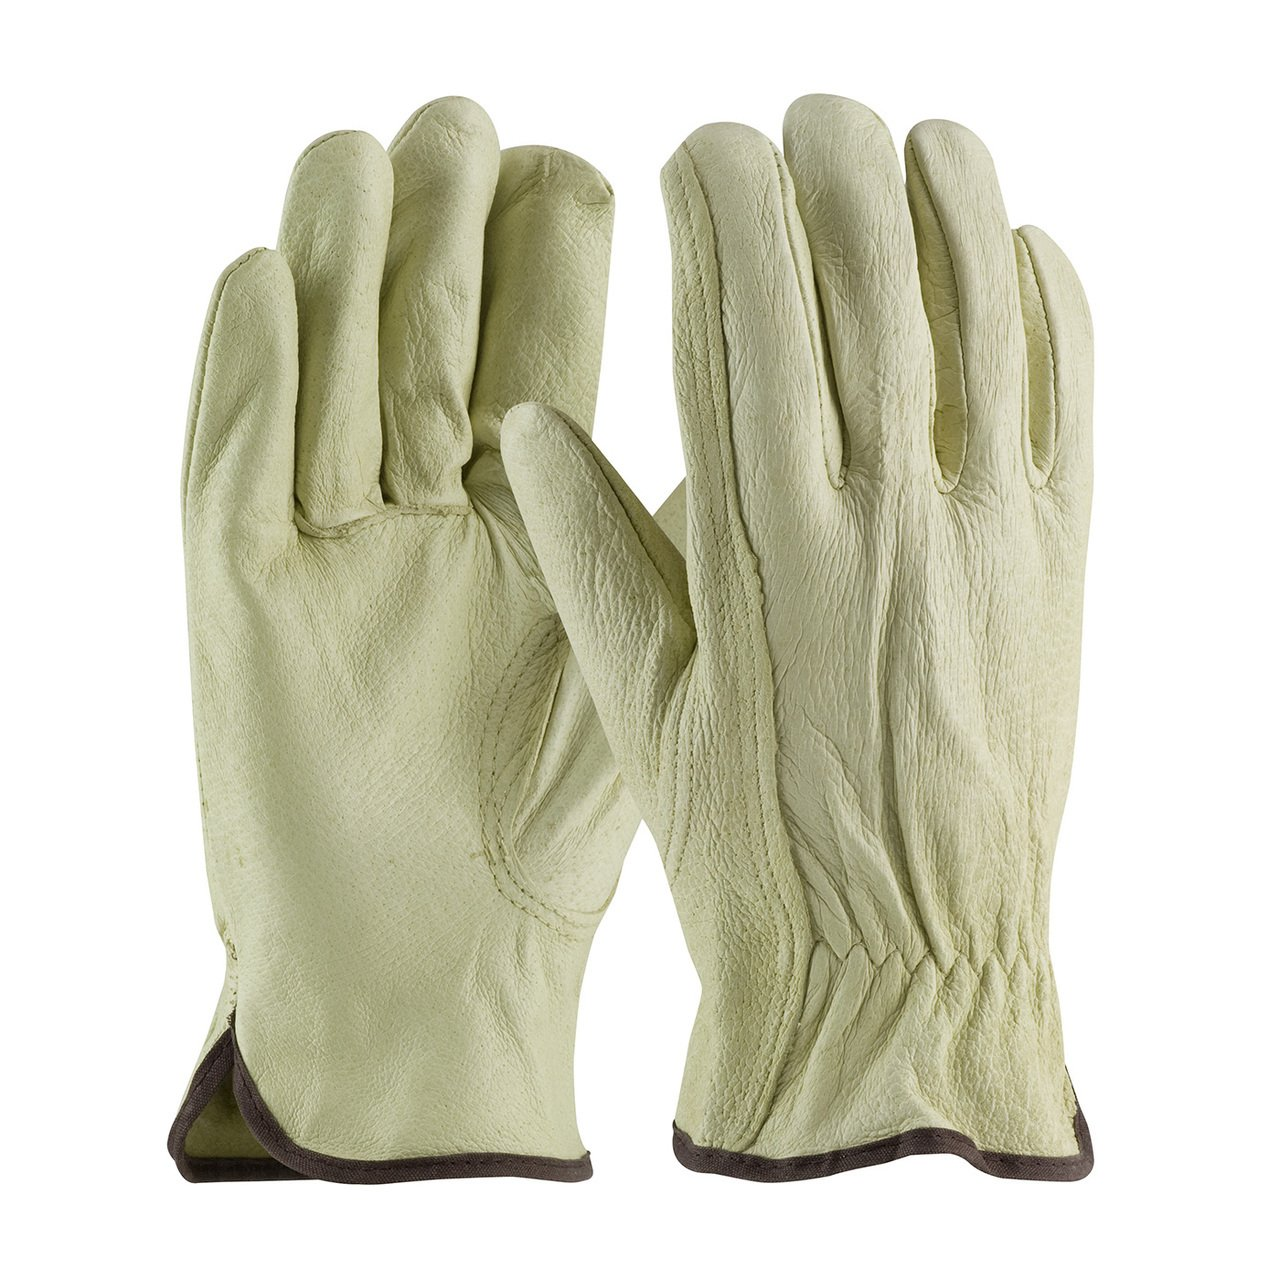 Select Grain Pigskin Leather Driver Gloves, 12 Pair (Large)